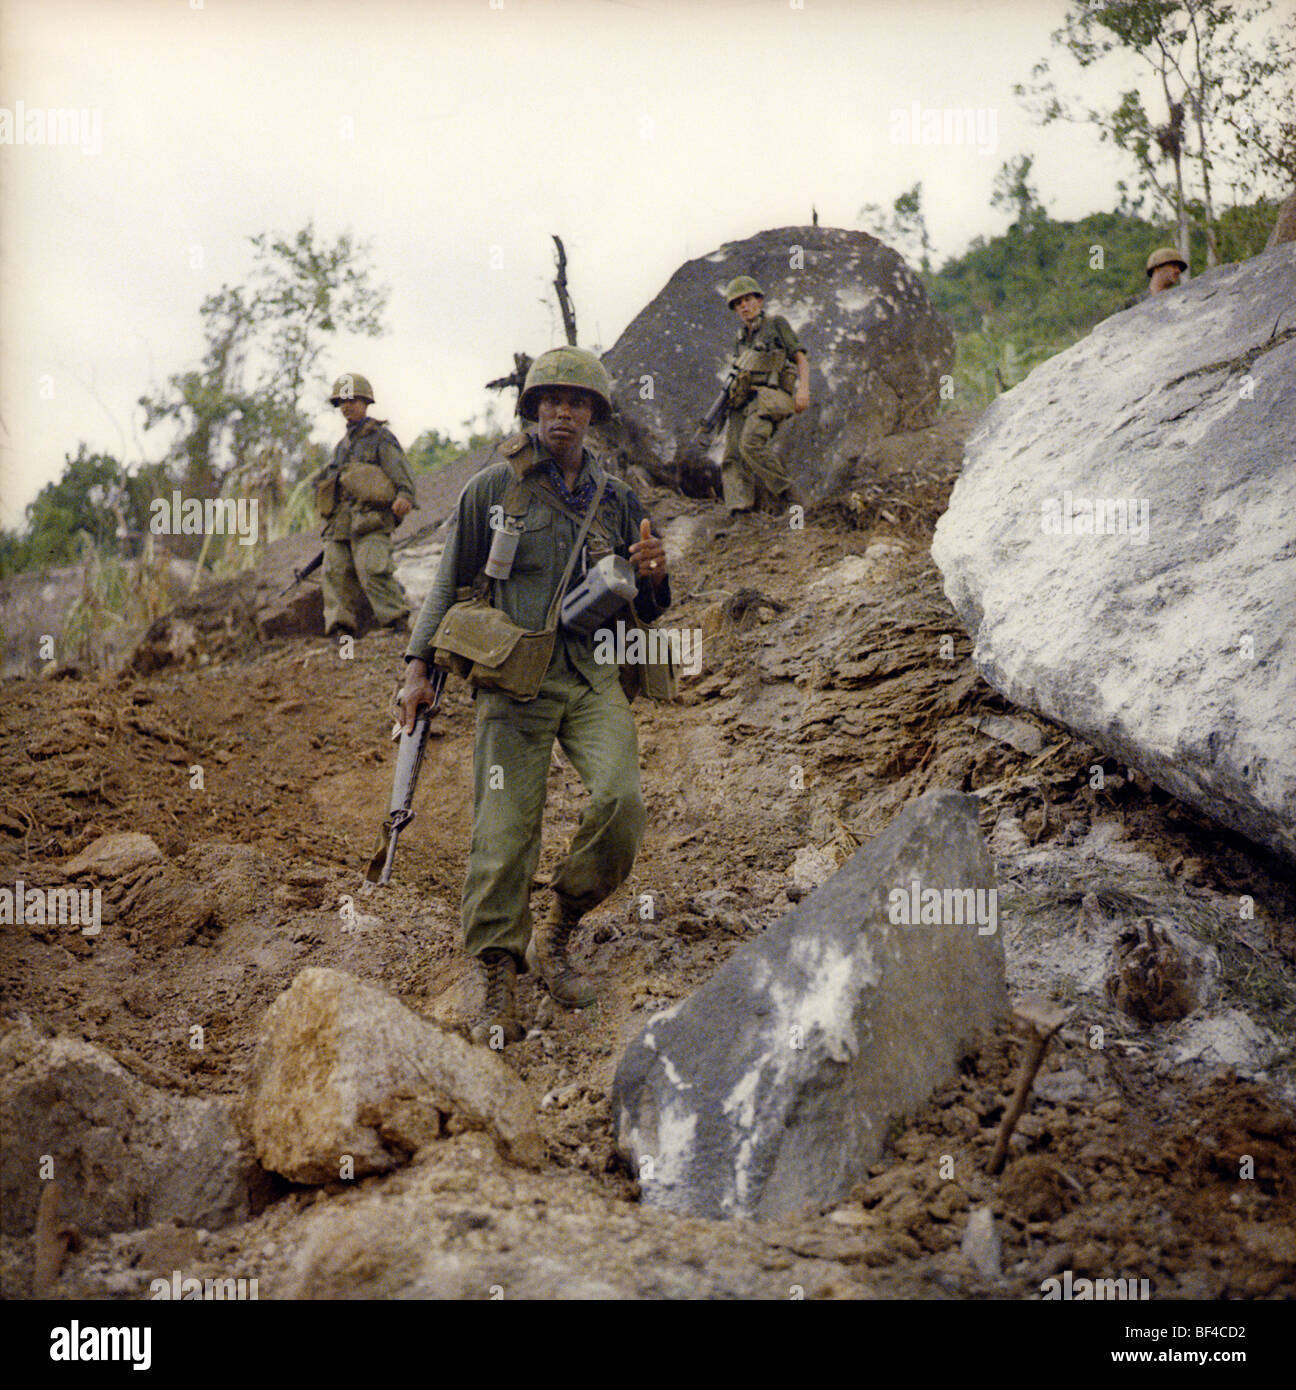 Members of B Troop, 1st Squadron, 9th Cavalry on patrol during the Vietnam War in 1967. - Stock Image